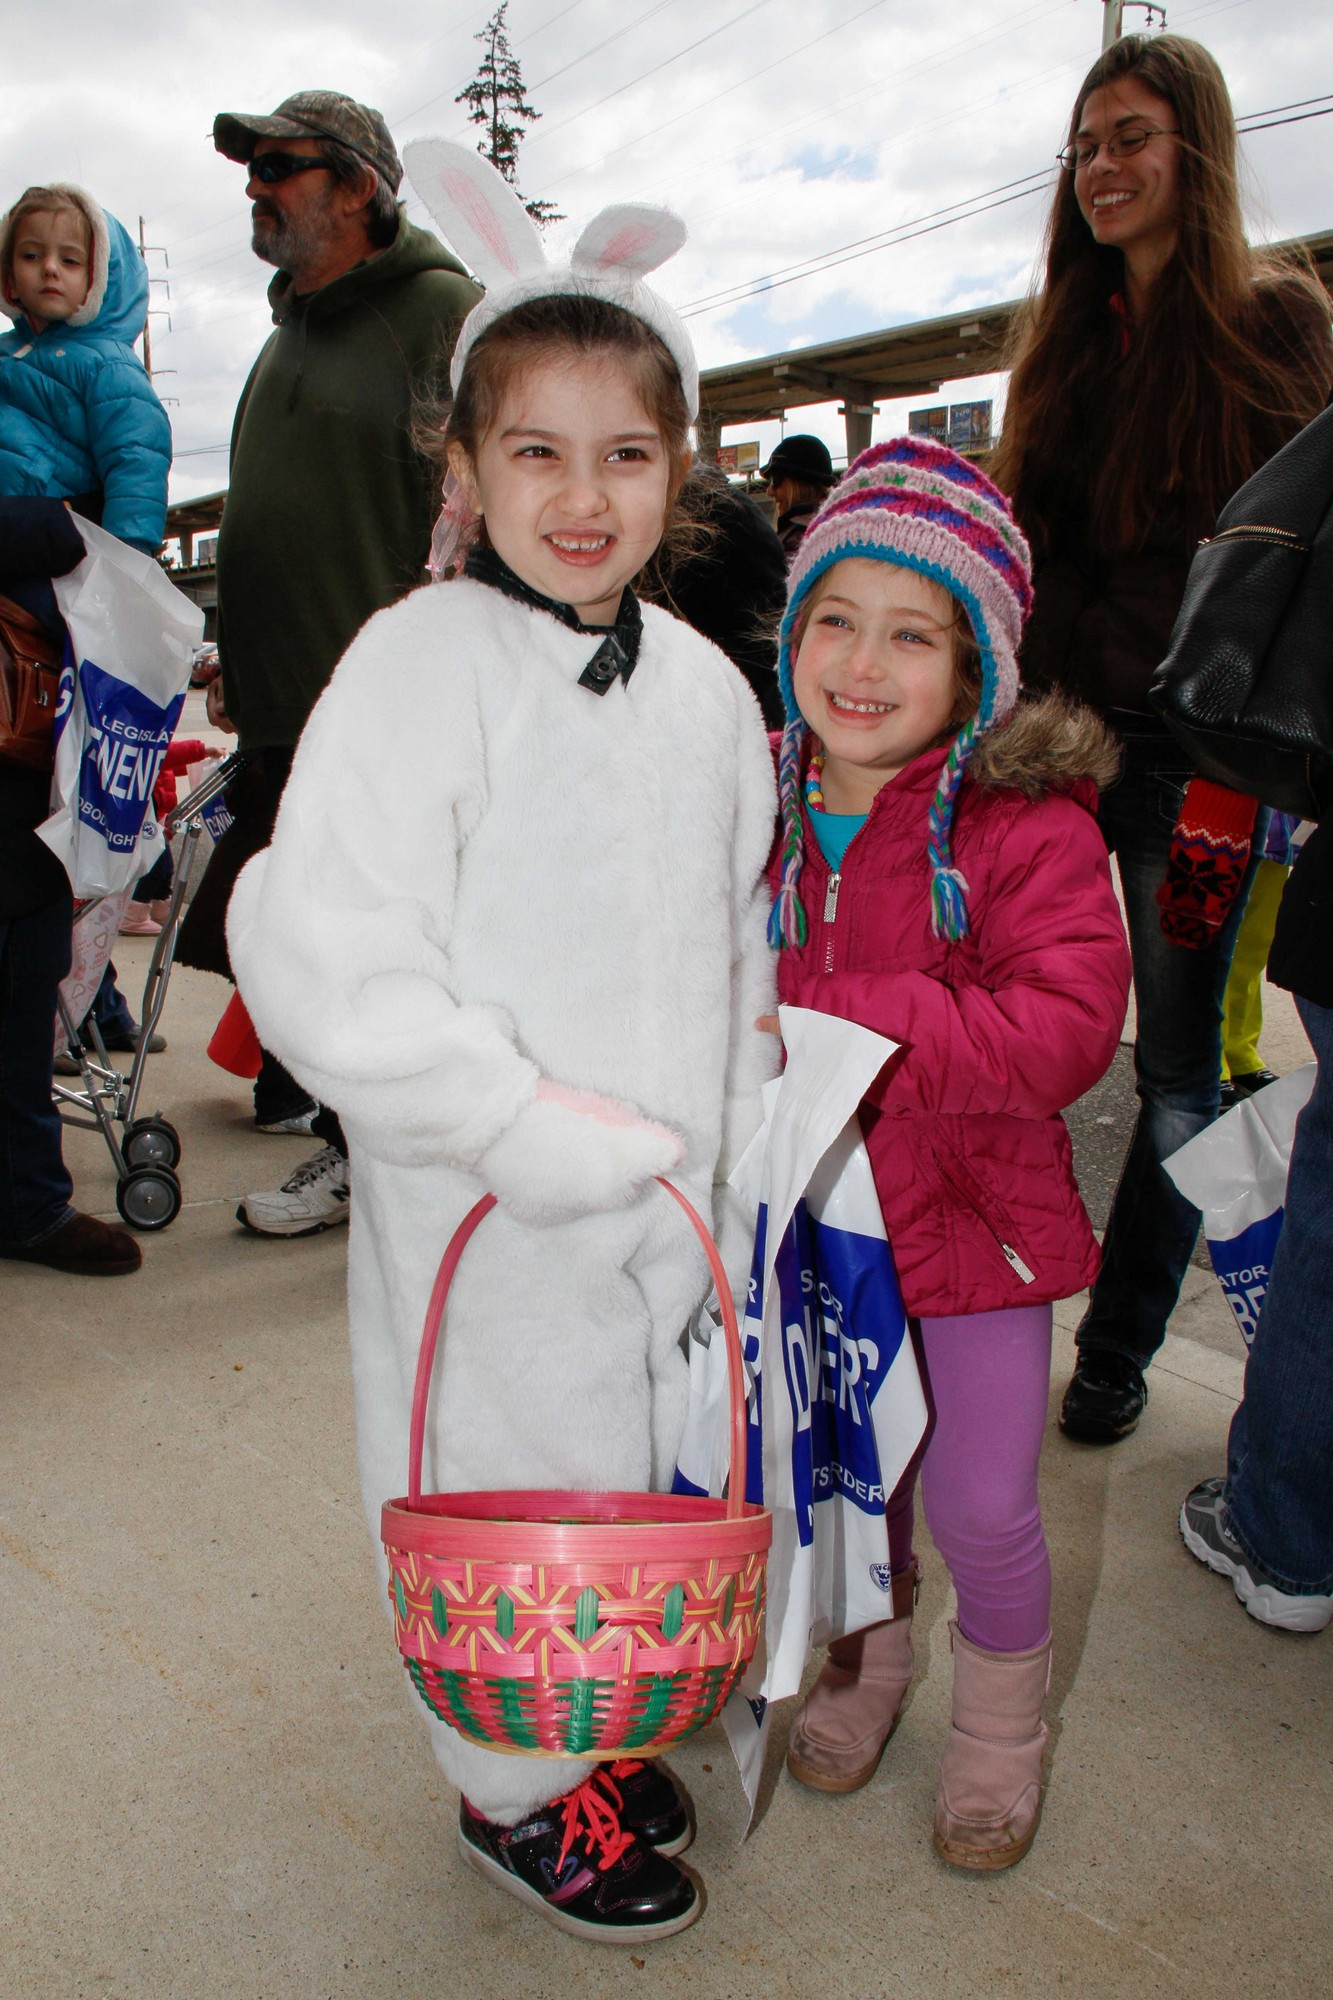 Eliana Conrad, 5, left, and Erica Shatz, 7, embraced the sprit of the holiday in spite of the cold.